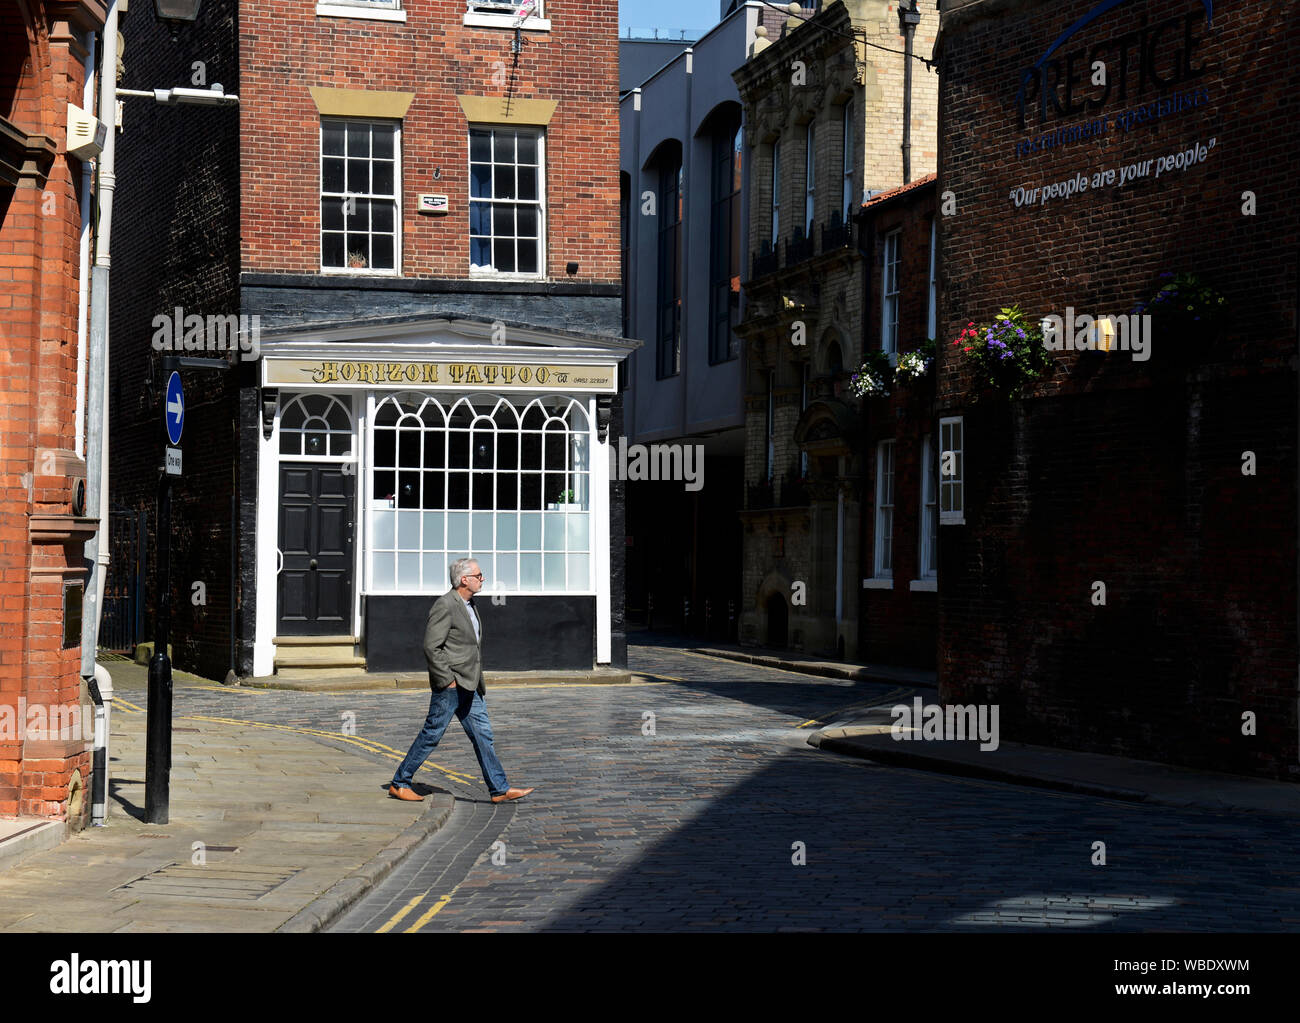 Man crossing cobbled street called The Land of Green Ginger, in the old town, Hull, East Yorkshire, England UK Stock Photo